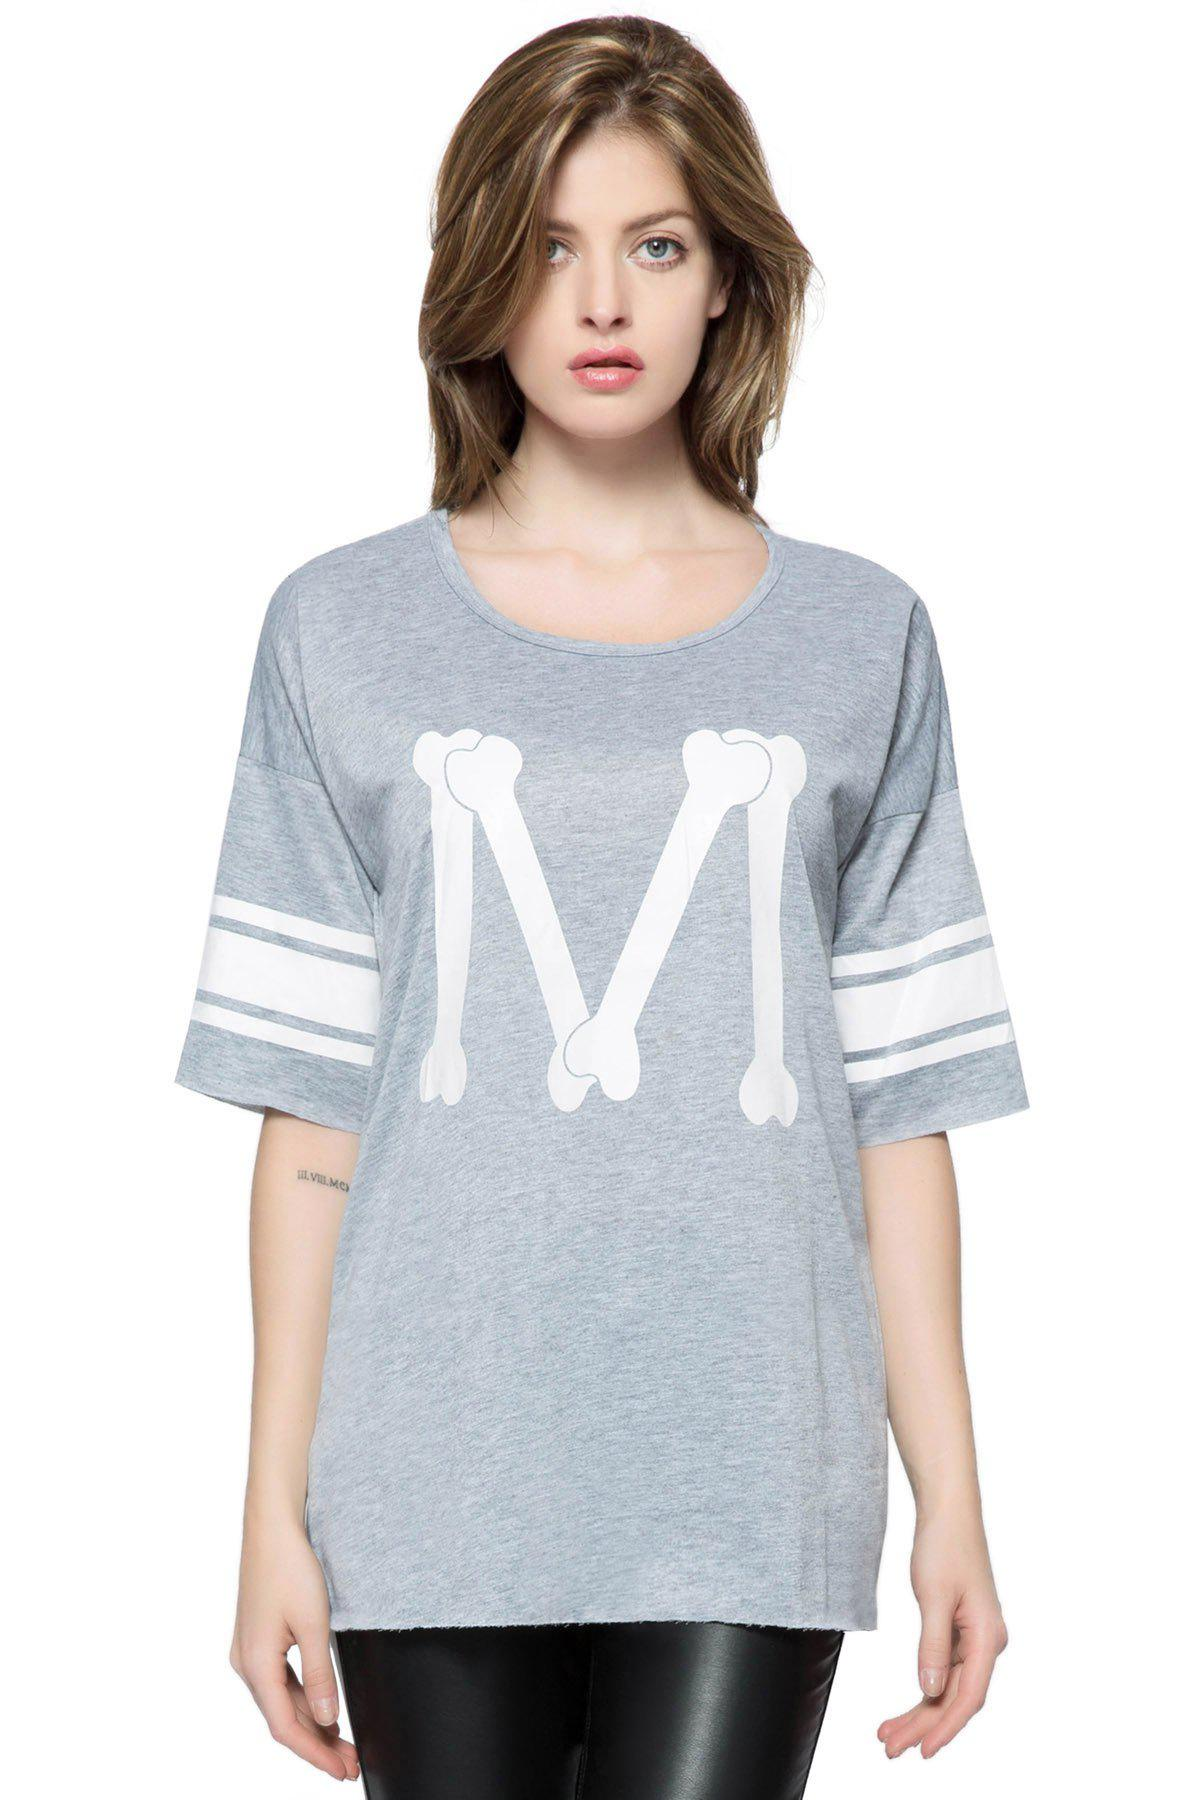 Casual Scoop Neck Loose-Fitting Printed 3/4 Length Sleeve T-shirt For WomenWOMEN<br><br>Size: ONE SIZE; Color: DEEP GRAY; Material: Polyester; Shirt Length: Long; Sleeve Length: Three Quarter; Collar: Scoop Neck; Style: Casual; Pattern Type: Print; Weight: 0.55KG; Package Contents: 1 x T-shirt;